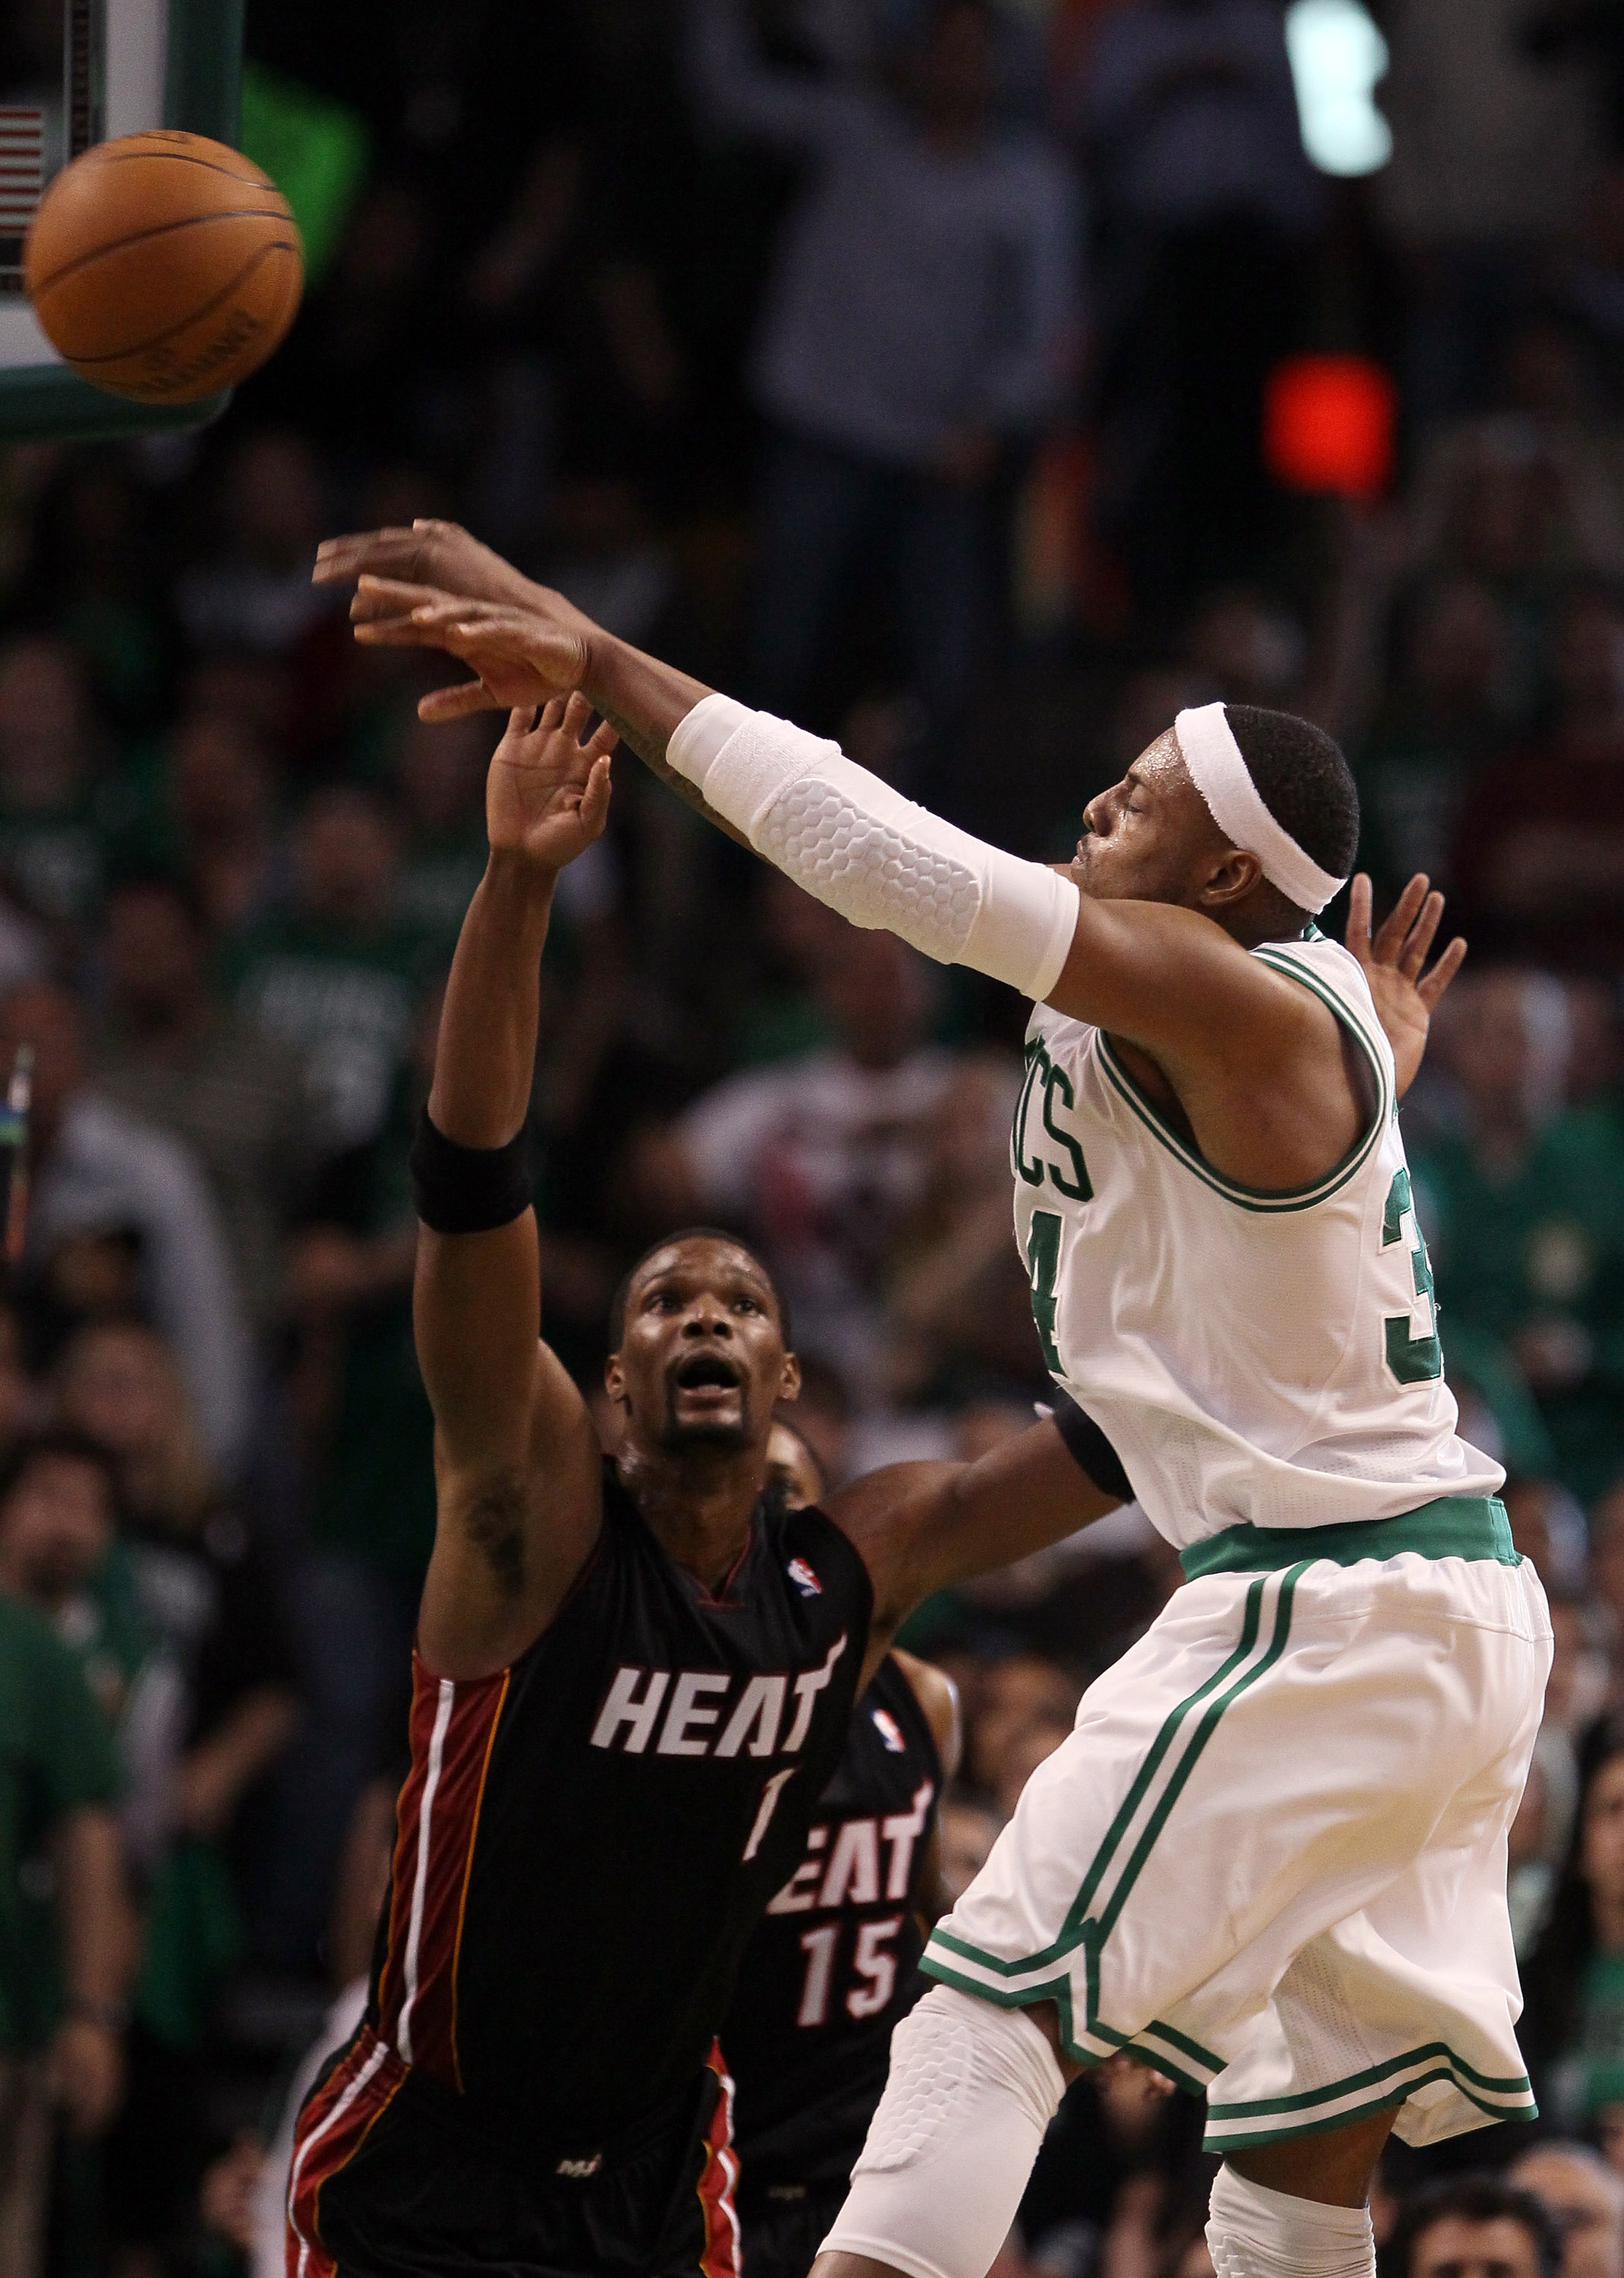 BOSTON, MA - MAY 09:  Paul Pierce #34 of the Boston Celtics passes the ball as Chris Bosh #1 of the Miami Heat defends in Game Four of the Eastern Conference Semifinals in the 2011 NBA Playoffs on May 9, 2011 at the TD Garden in Boston, Massachusetts.  Th